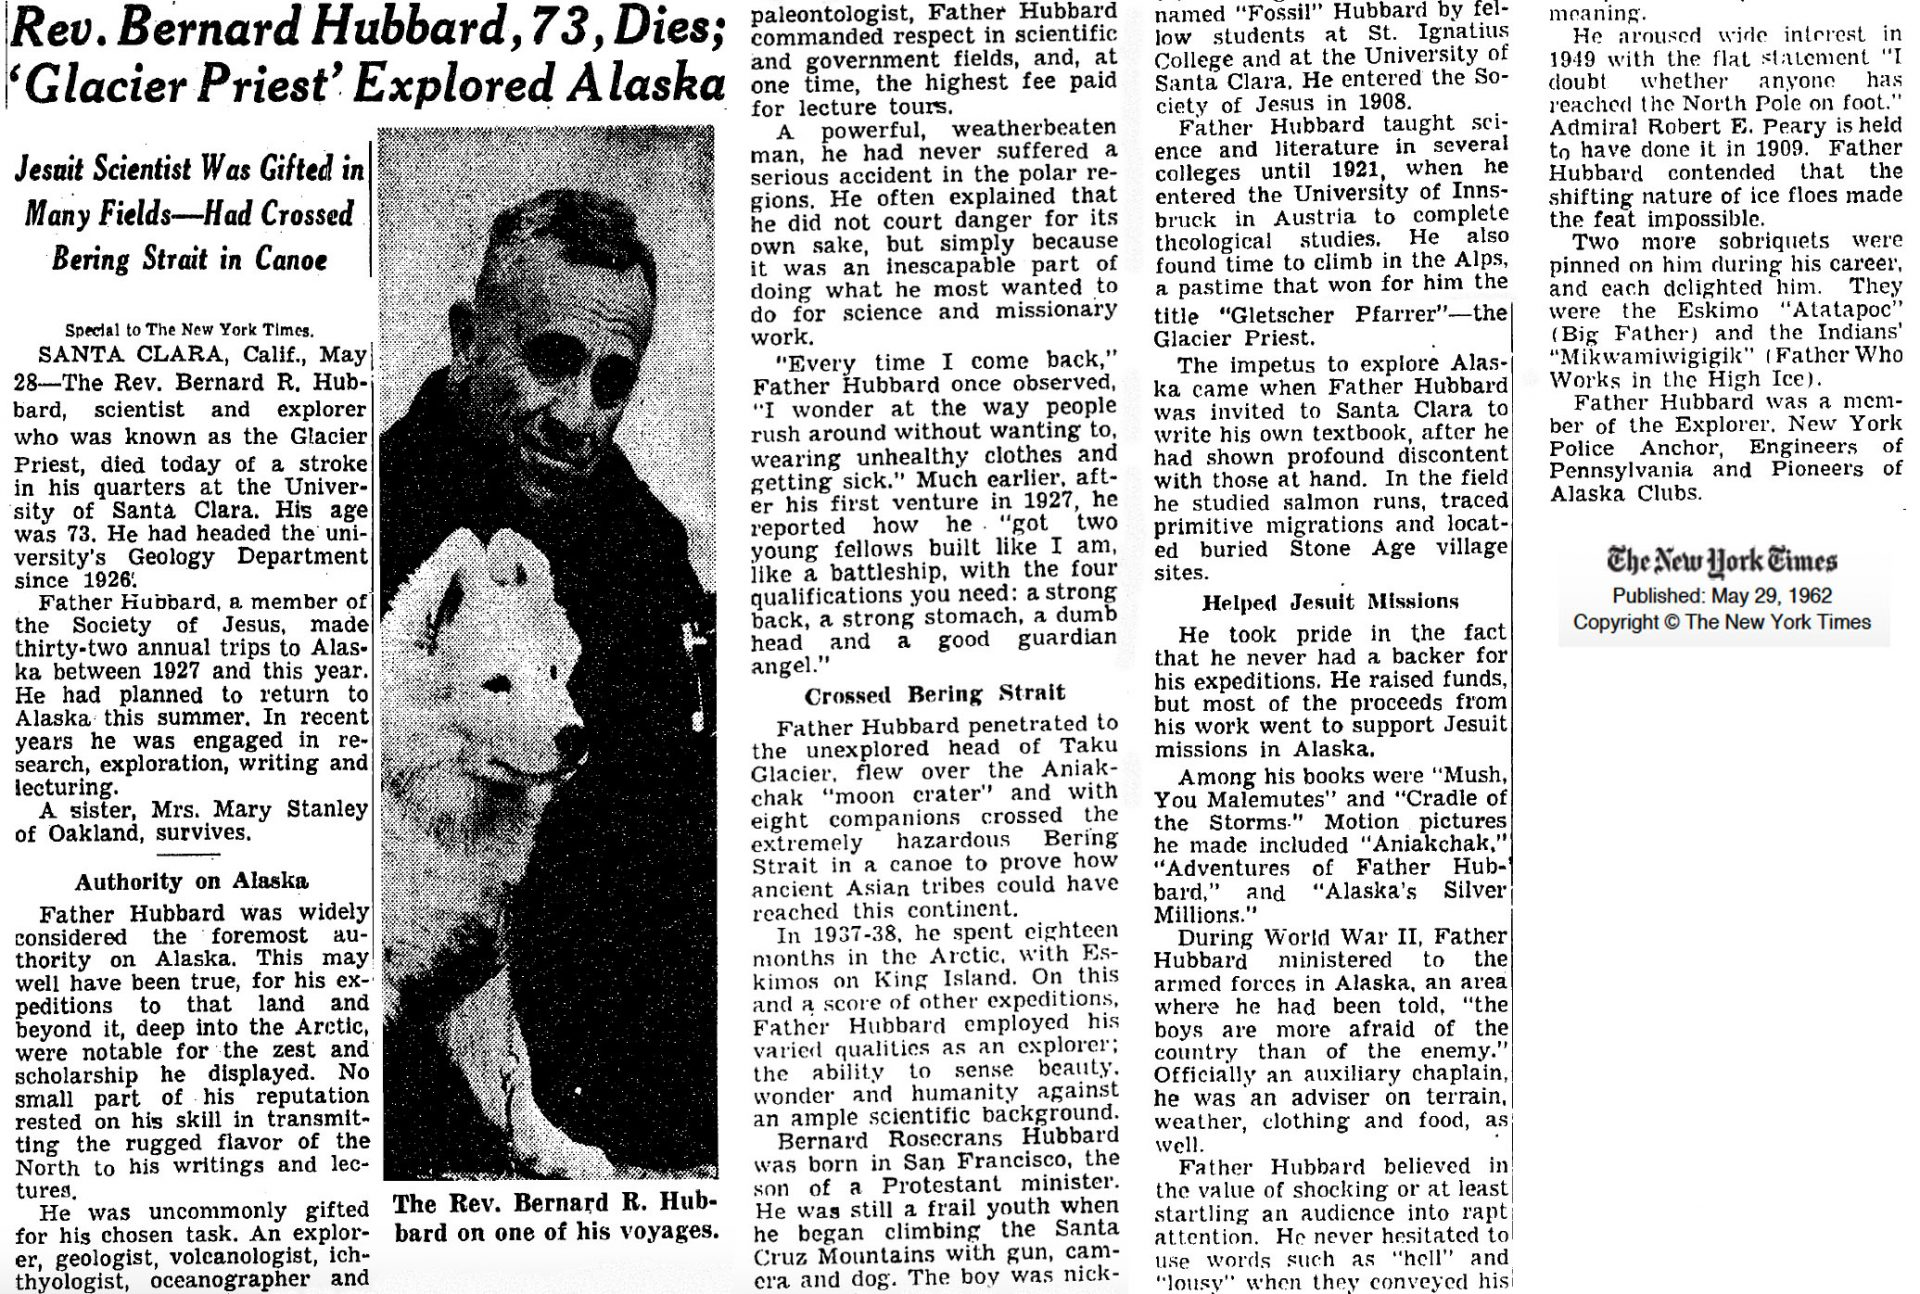 May 29, 1962 obituary of Father Hubbard, New York Times